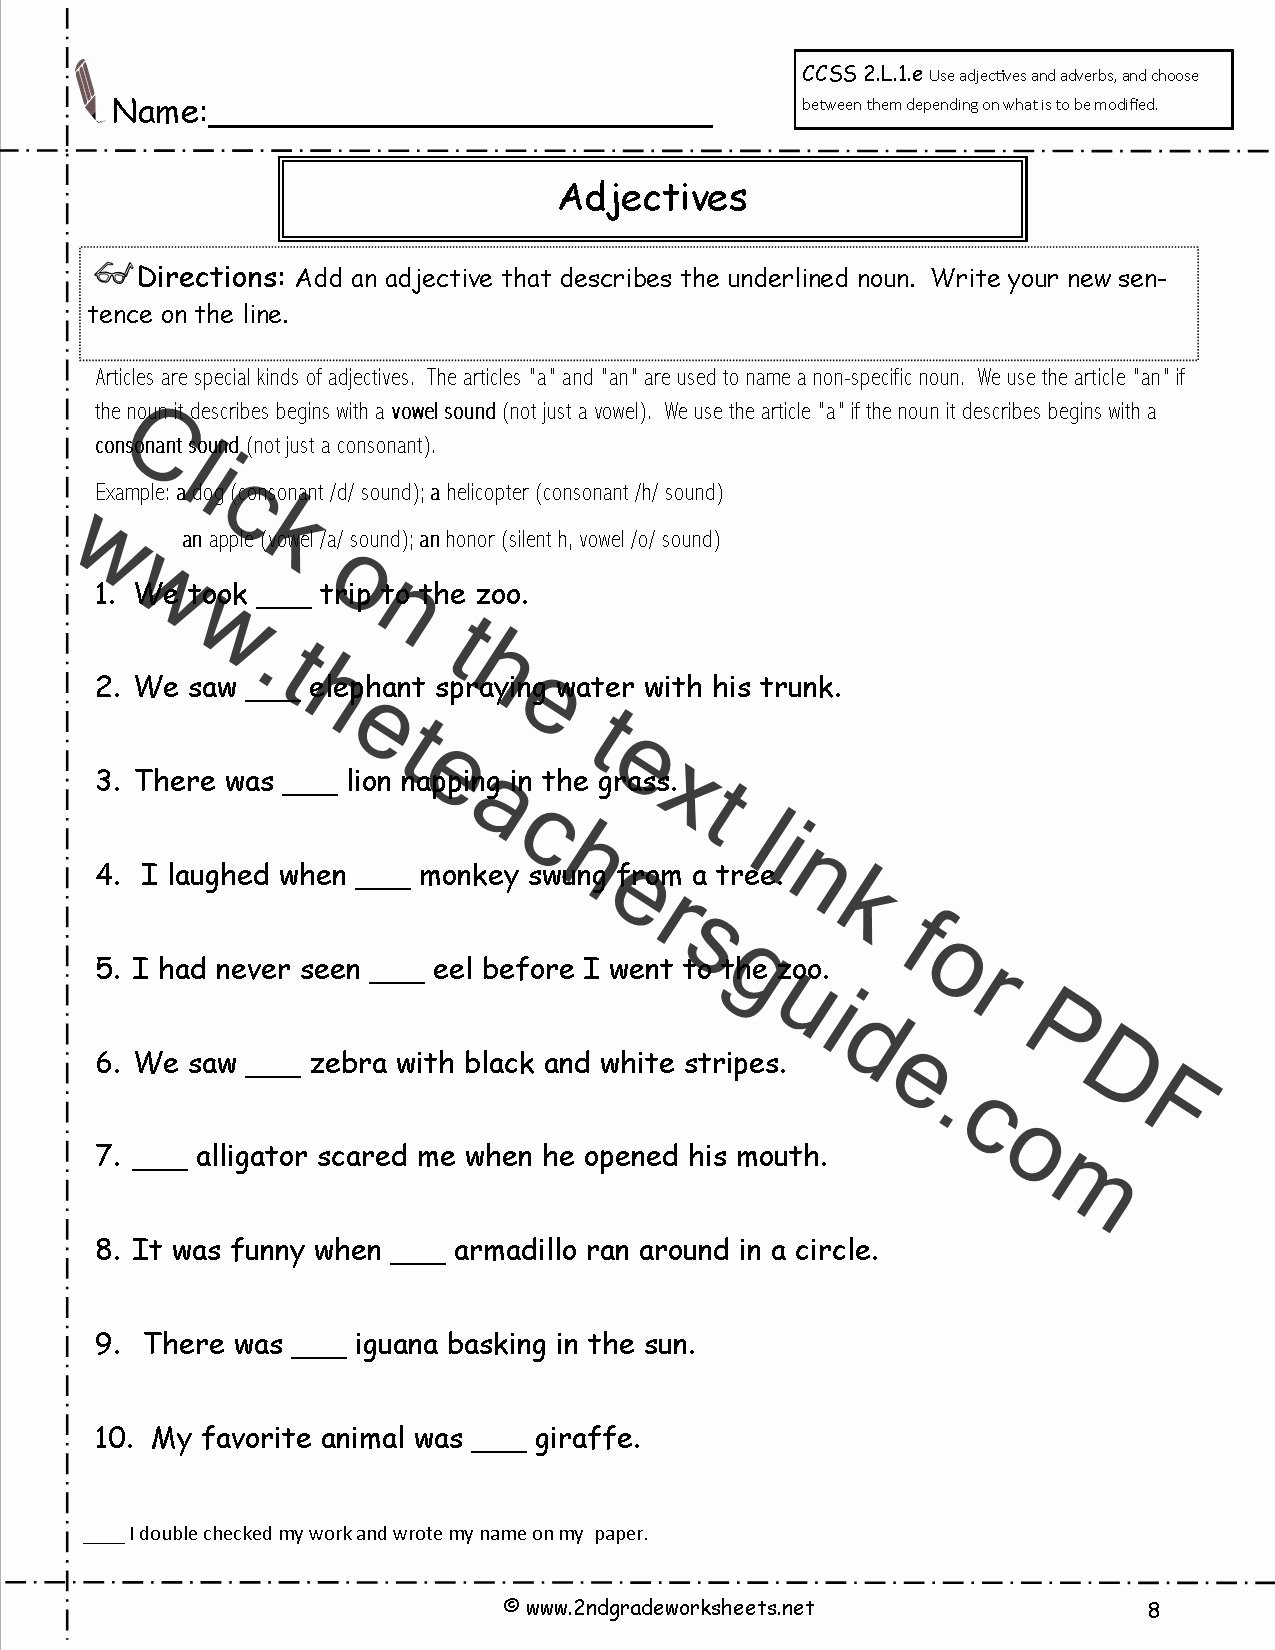 Grammar Worksheets for 2nd Grade Lovely Free Language Grammar Worksheets and Printouts